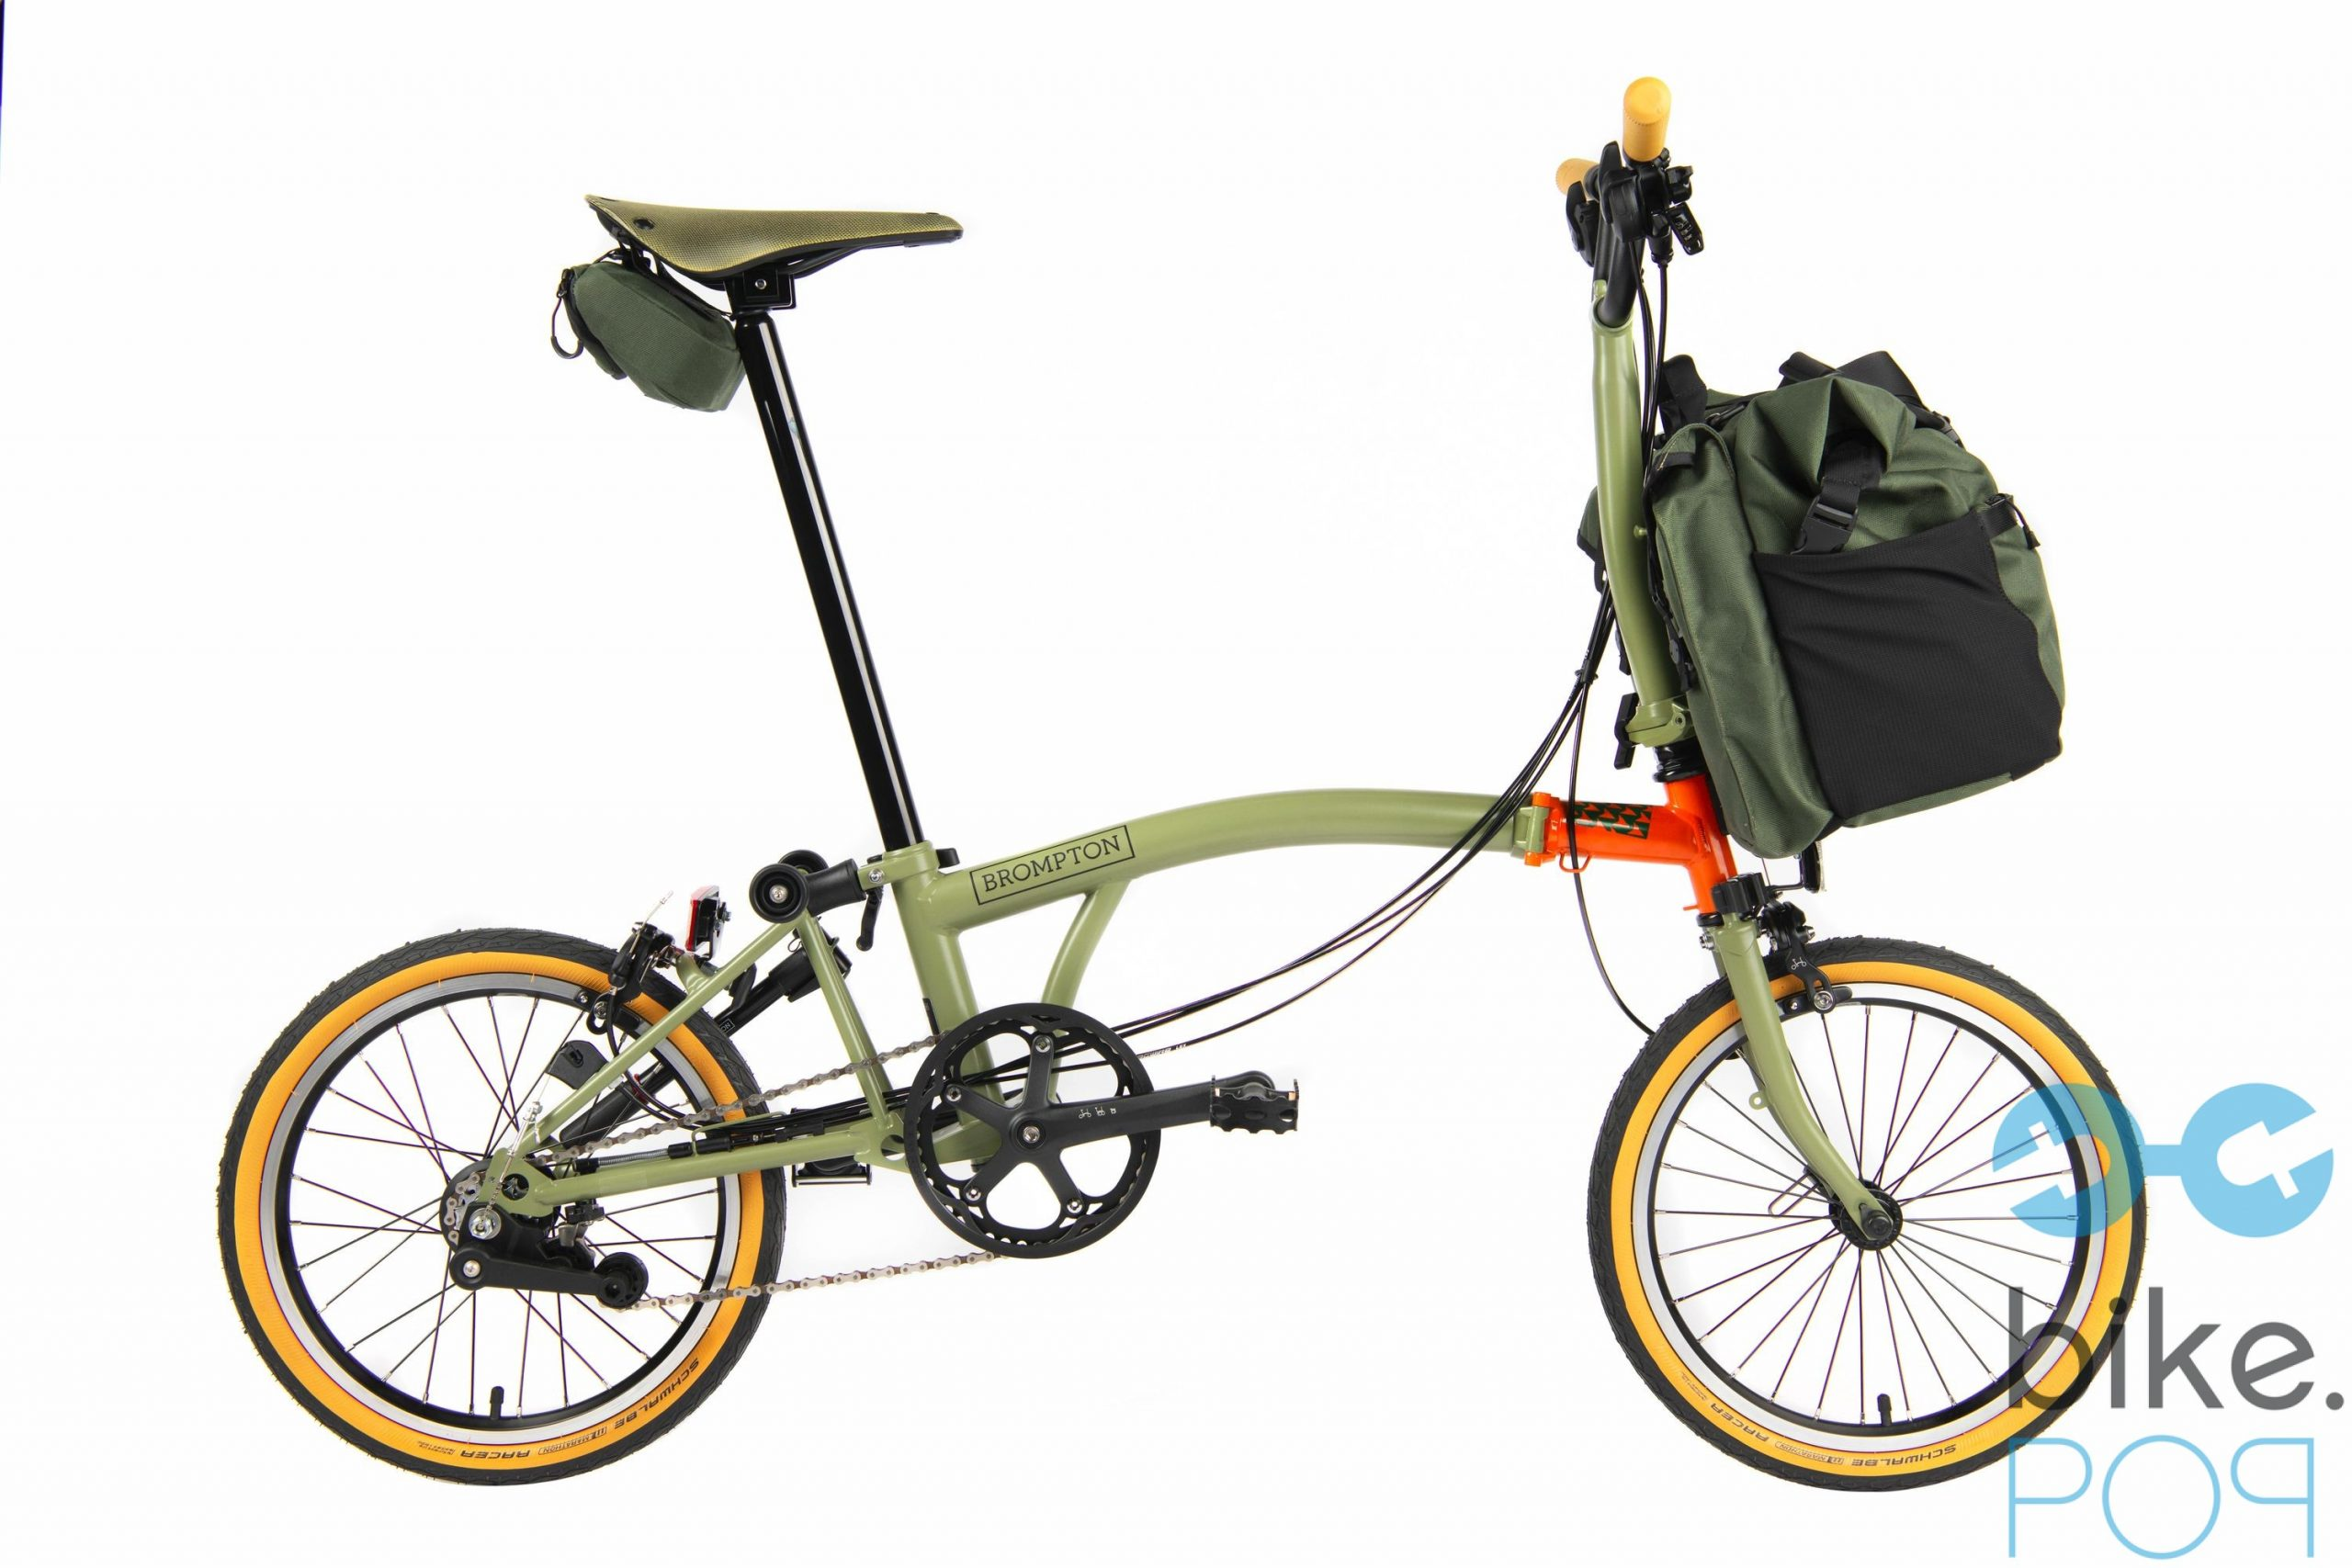 Brompton Explore Edition - Segue a rota mais longa!